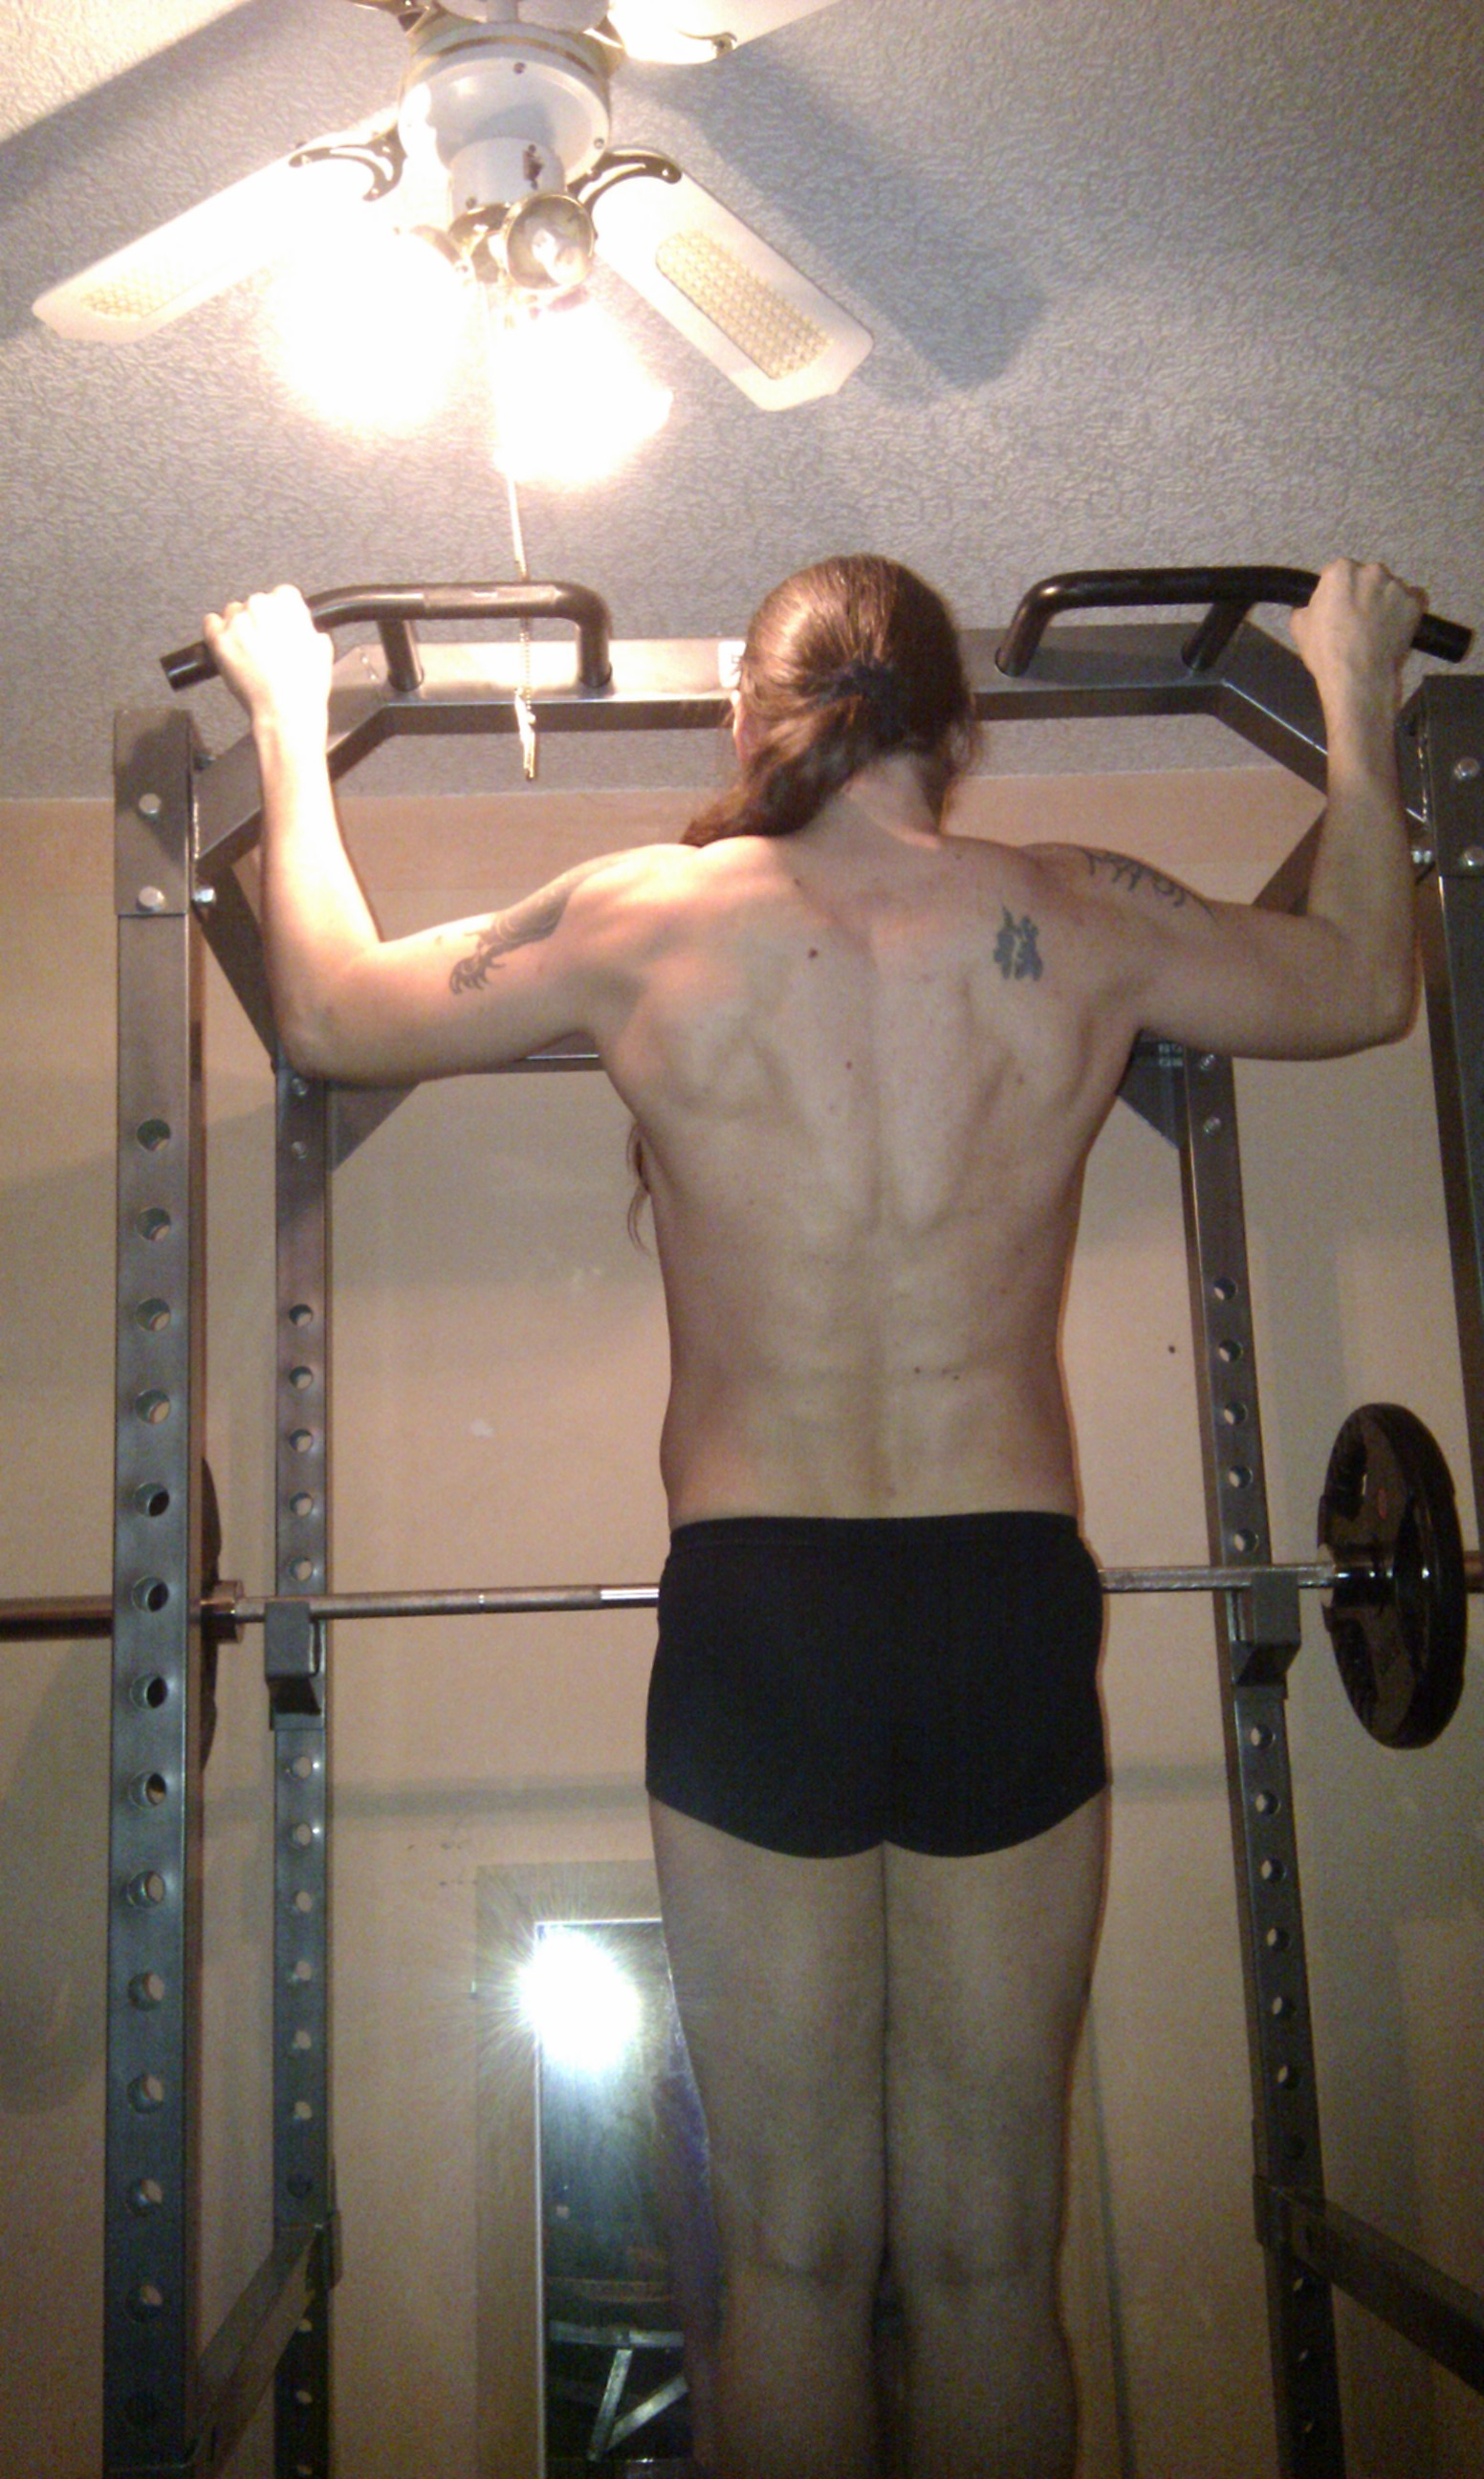 Halfway through wide-grip pull-up